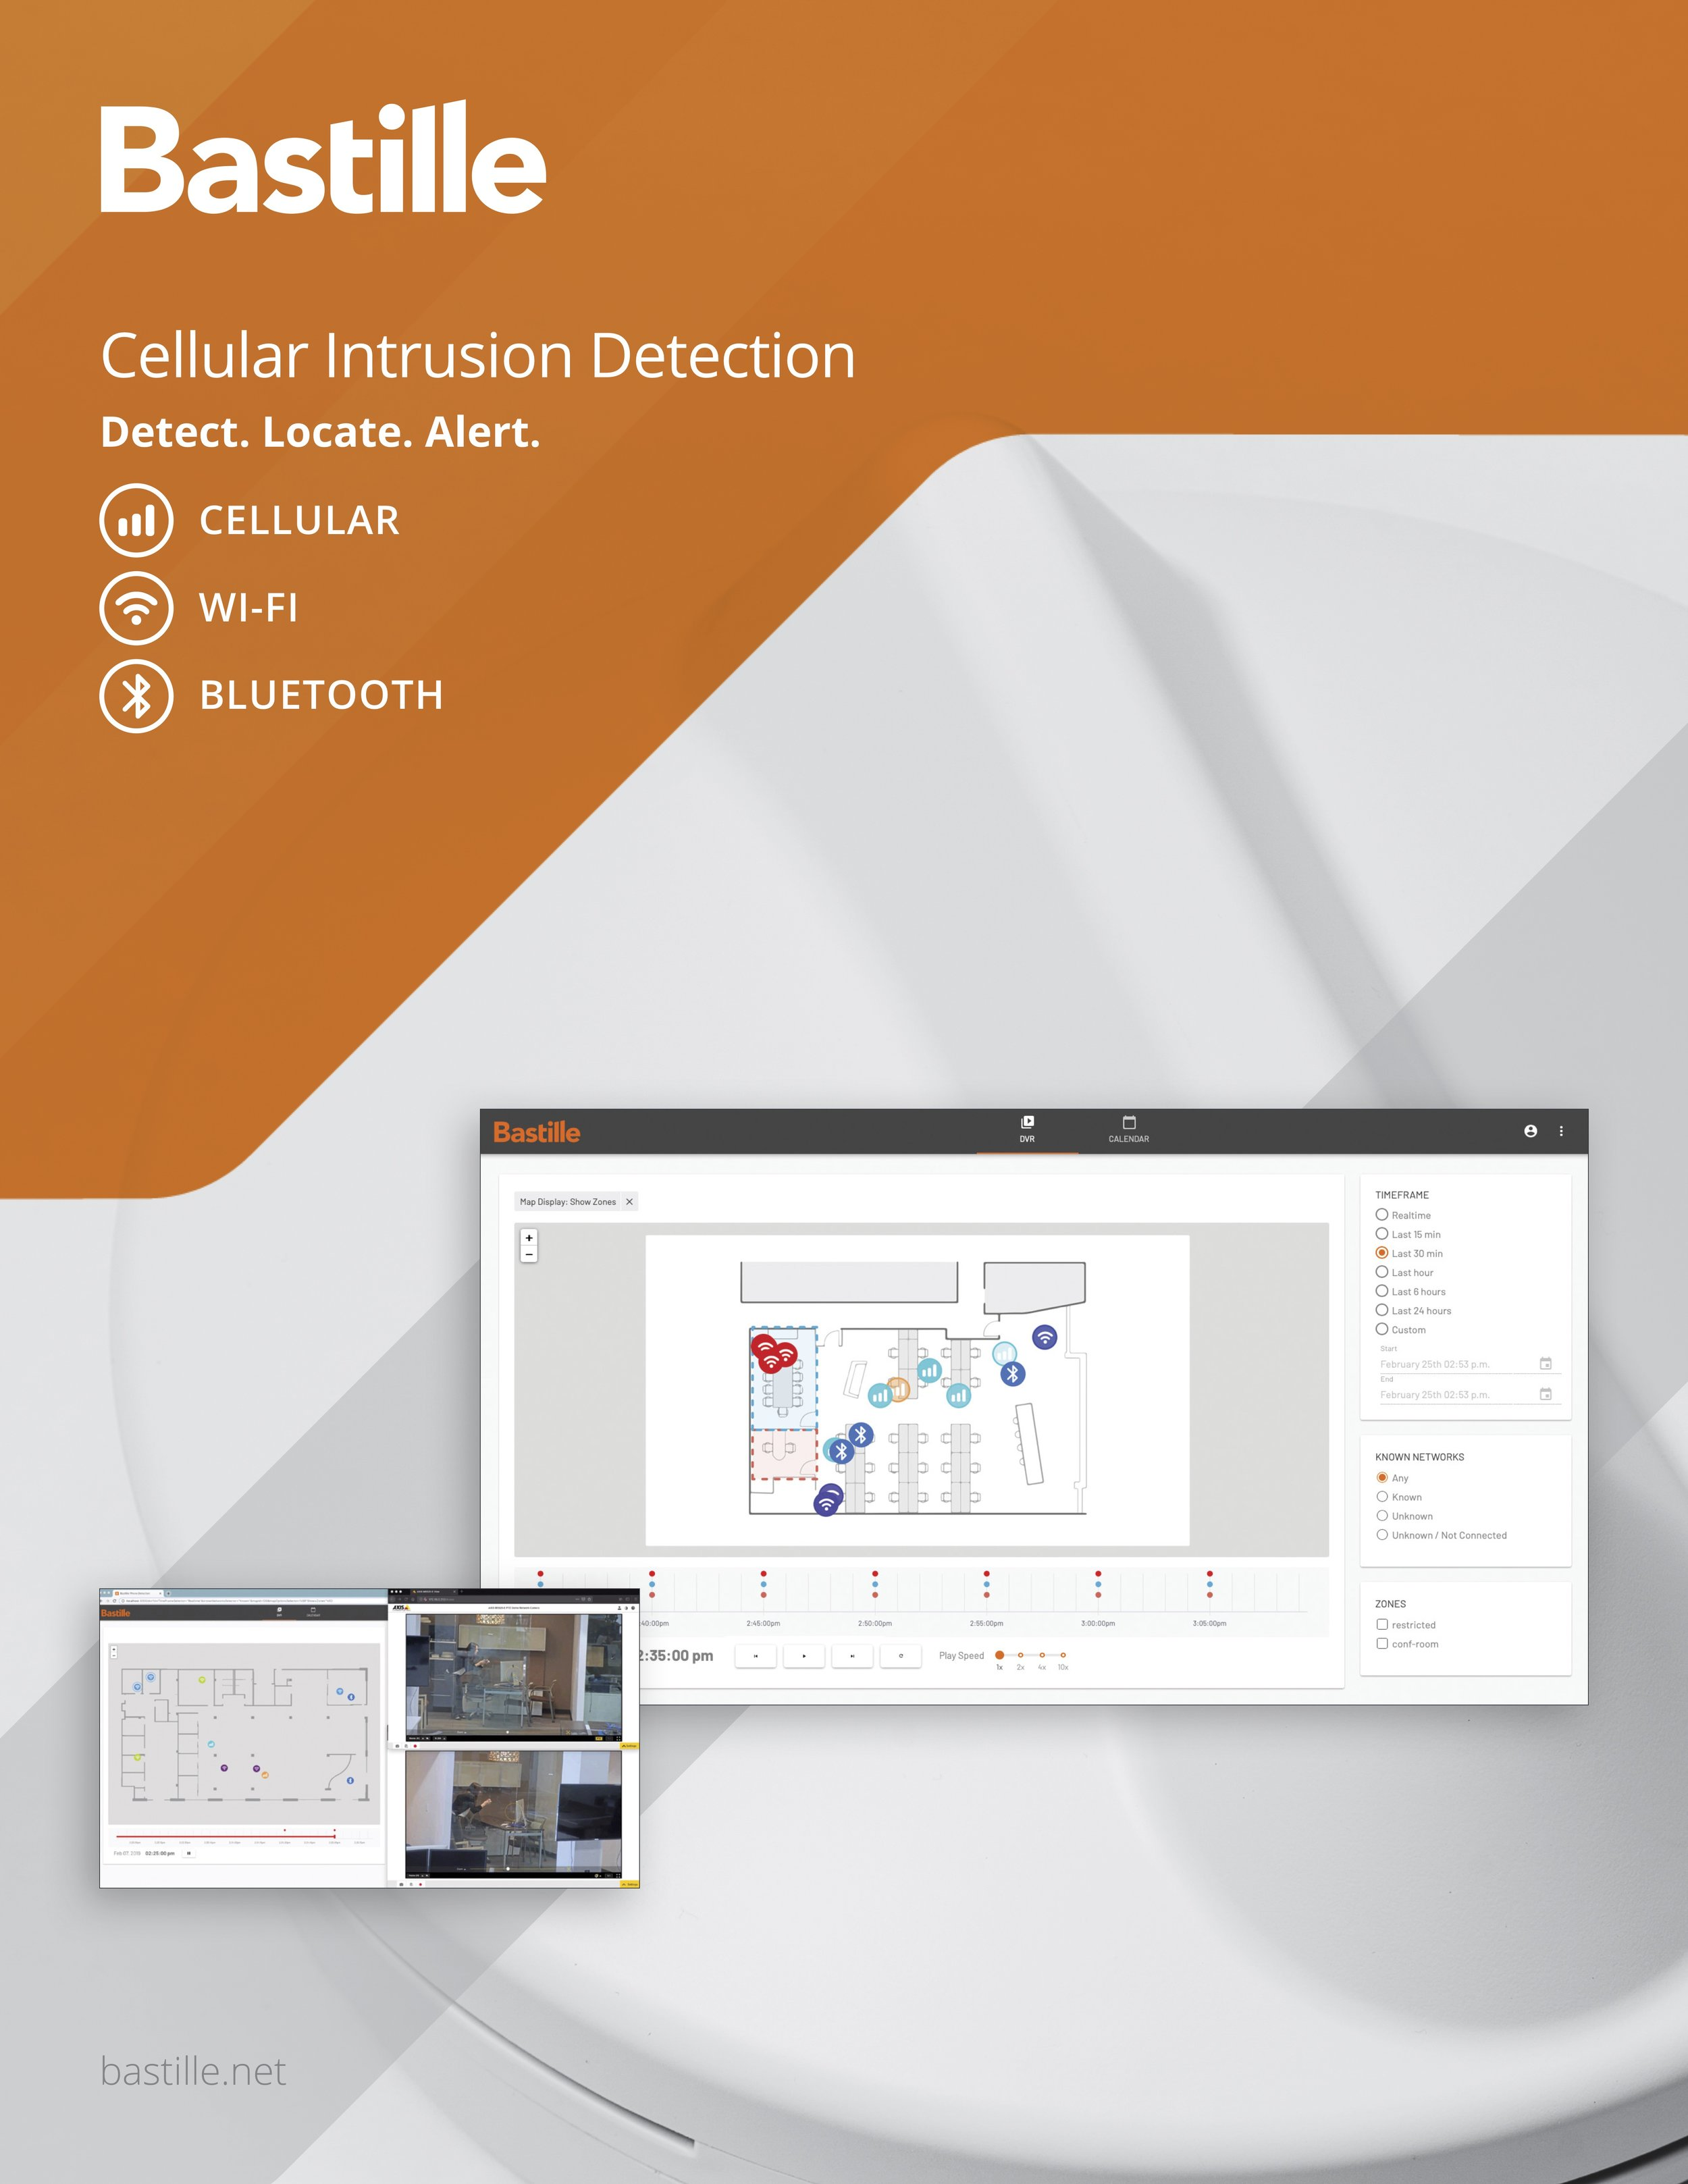 Download the latest data sheet on Cellular Intrusion Detection